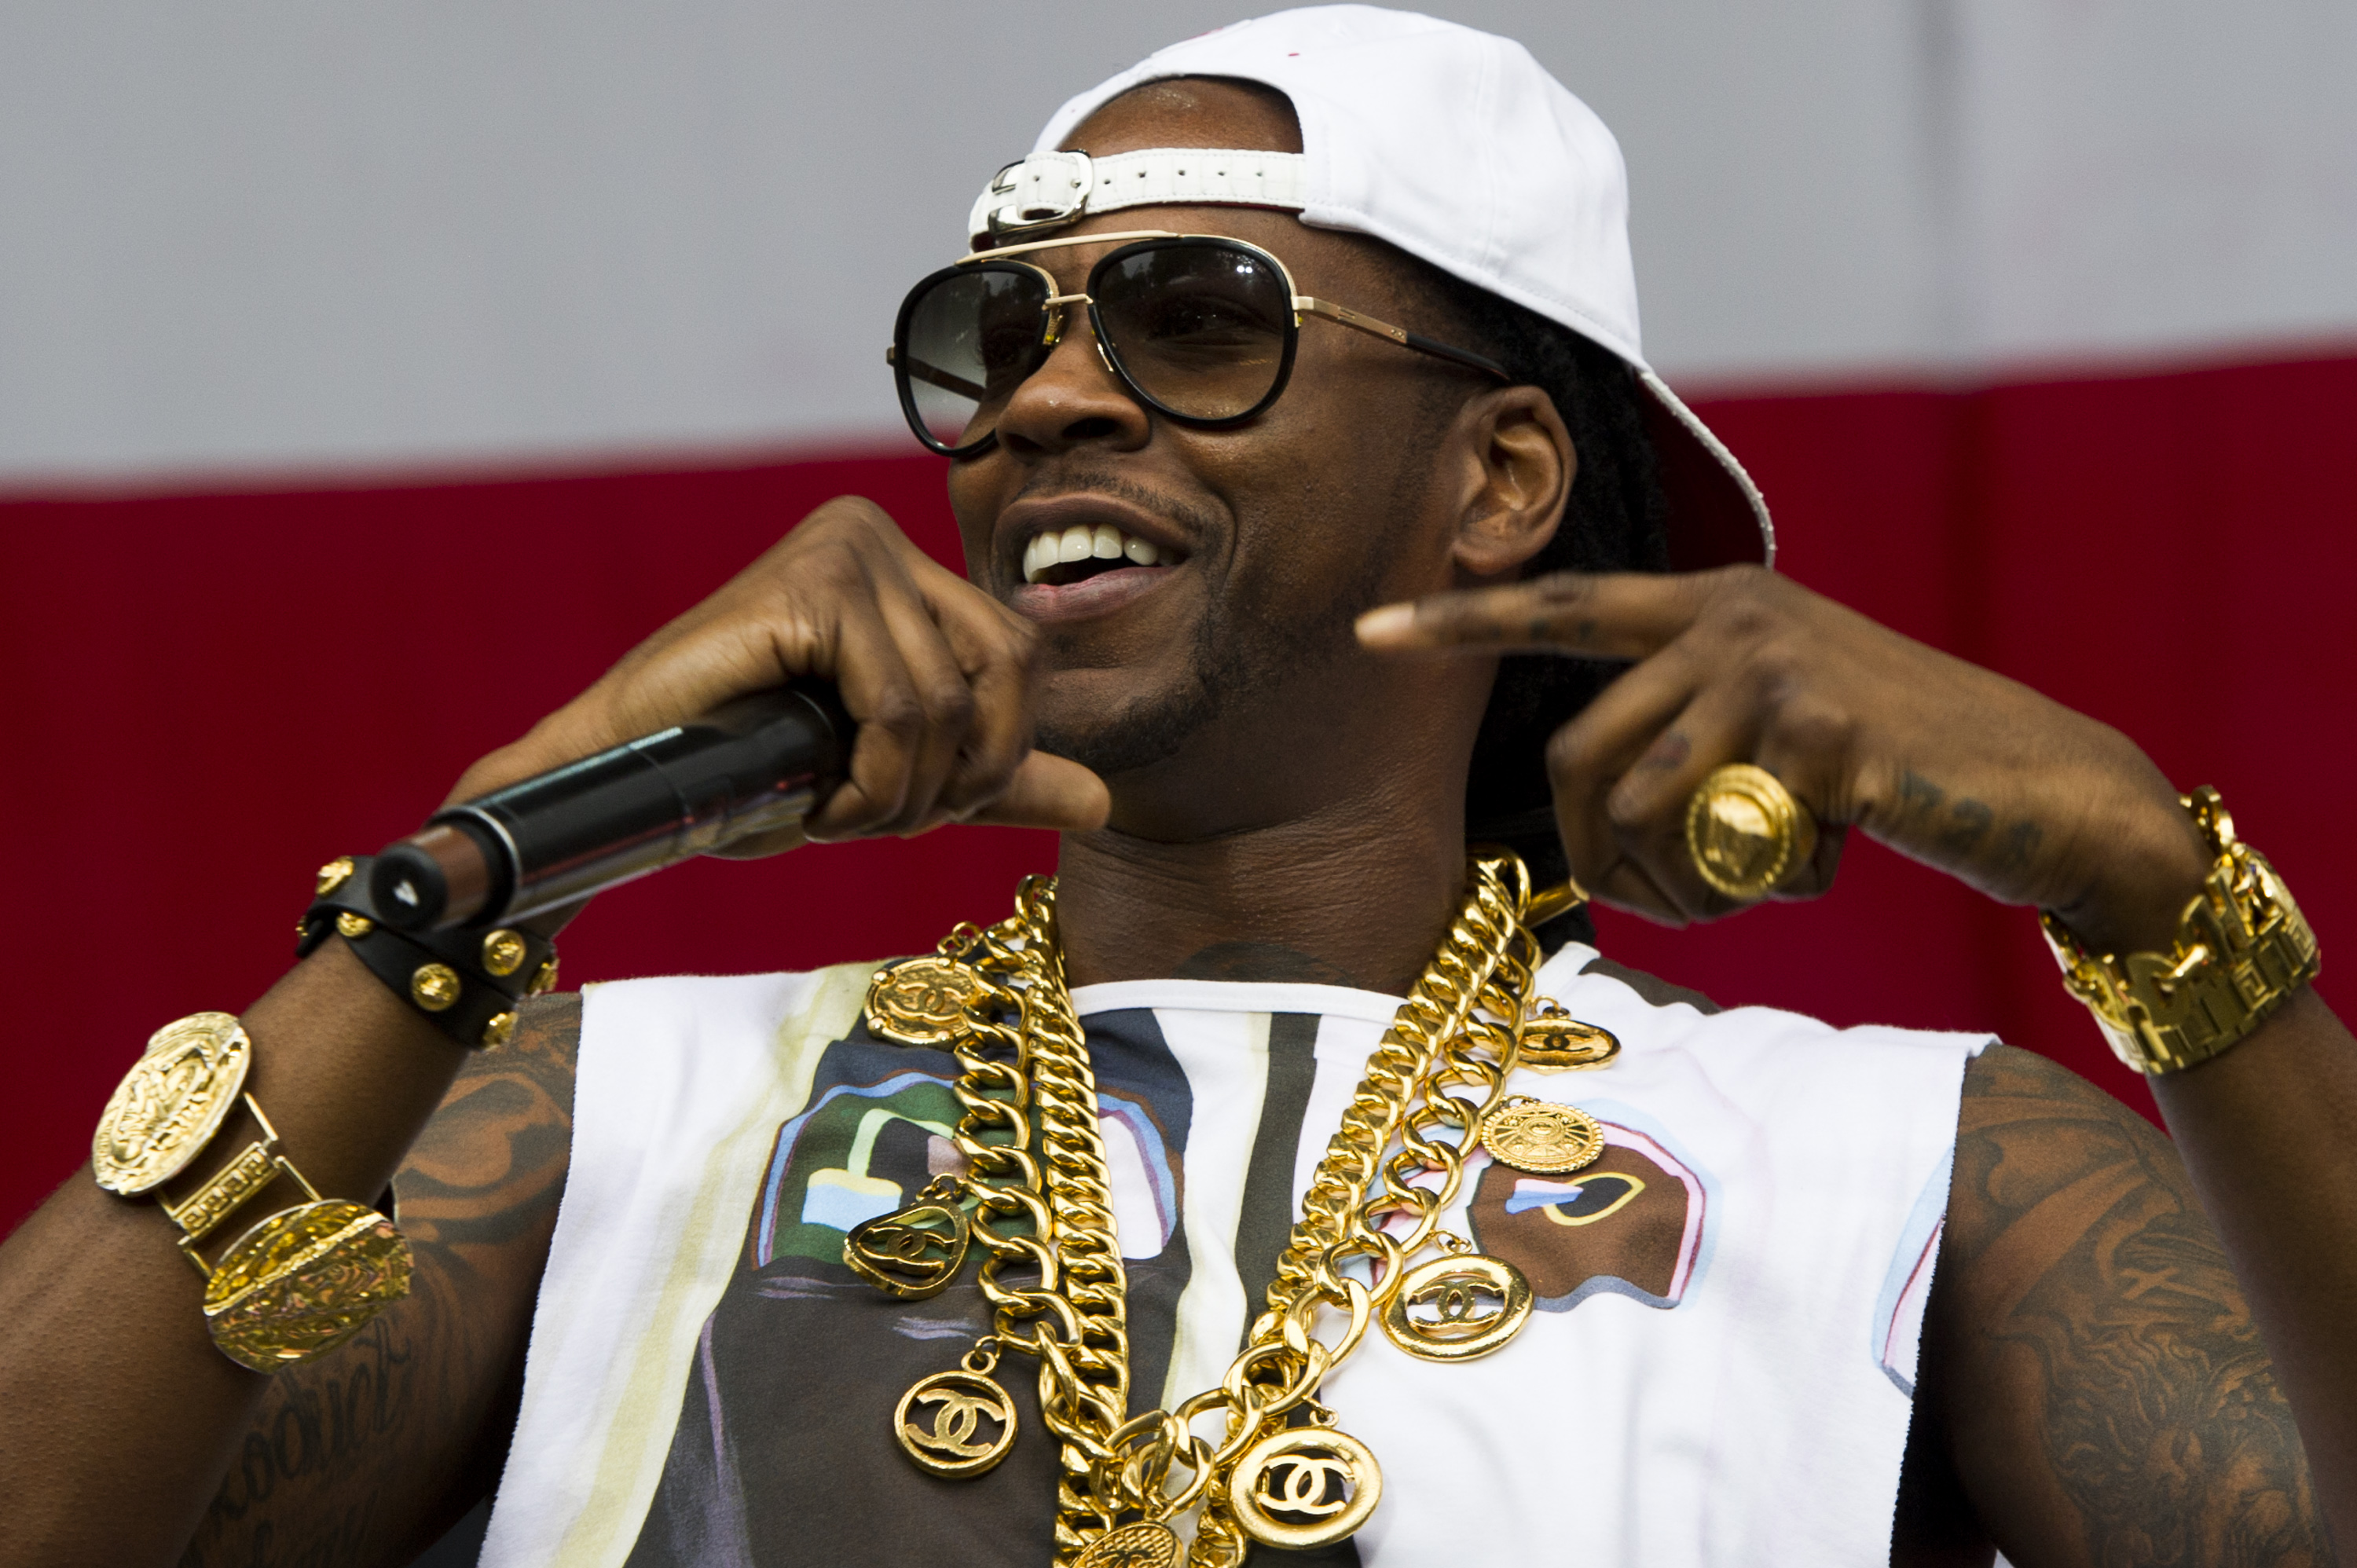 This Aug. 31, 2013 file photo shows 2 Chainz performing at the 2013 Budweiser Made in America Festival in Philadelphia, Pa.